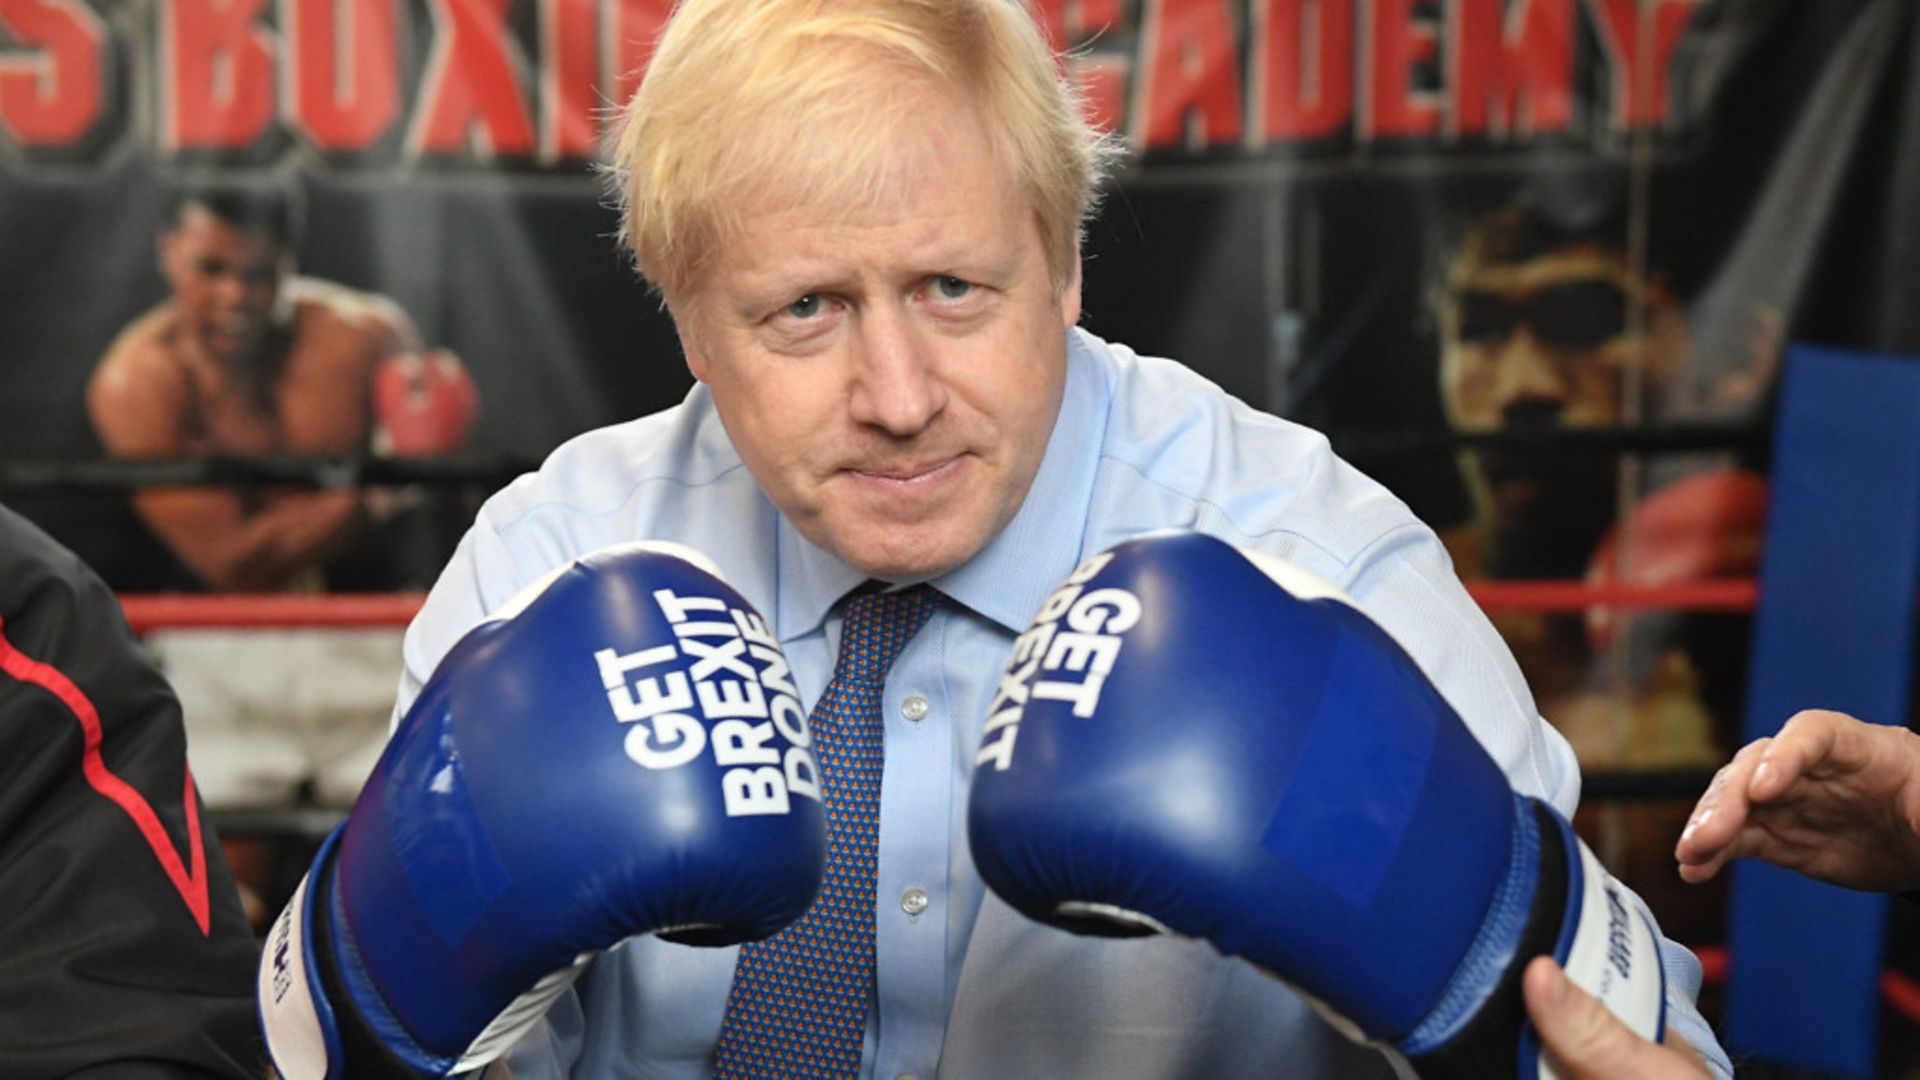 Boris Johnson in 'get Brexit done' gloves - Credit: PA